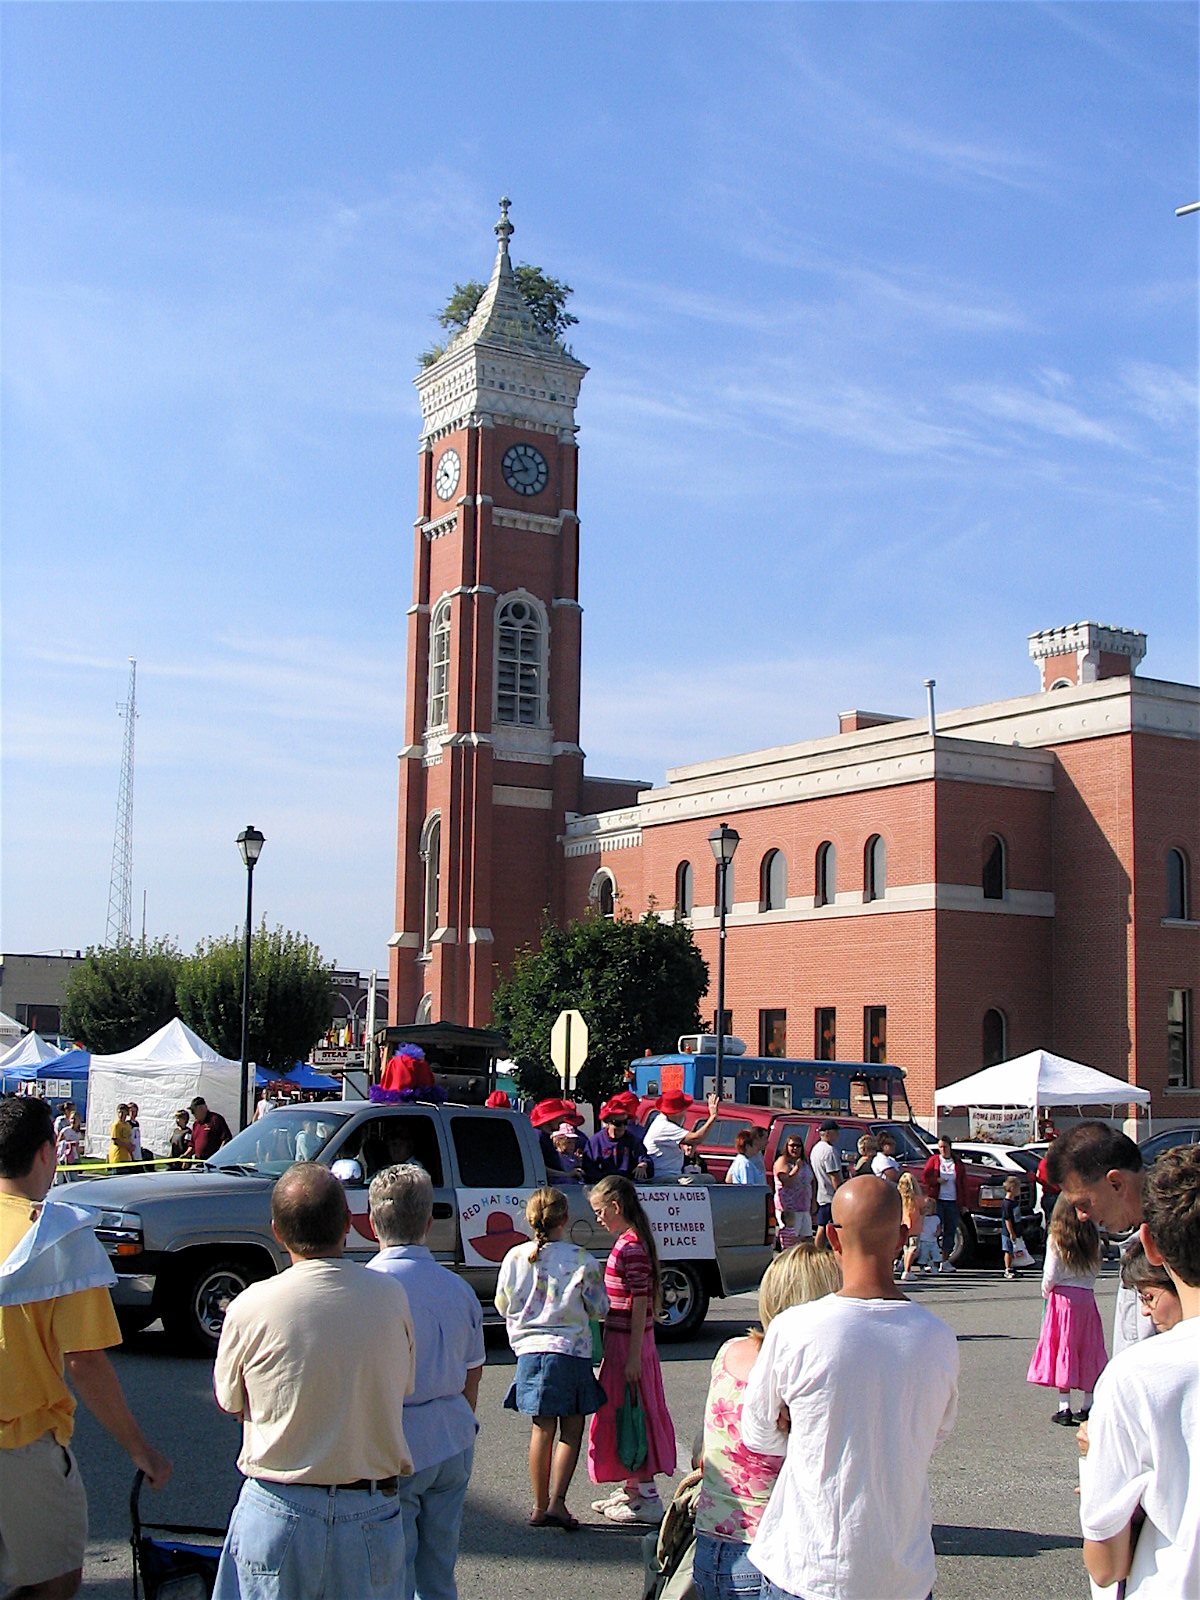 Celebrating the Fall Festival in Greensburg's historic central square, in front of the County Courthouse, famous for the tree growing from its tower